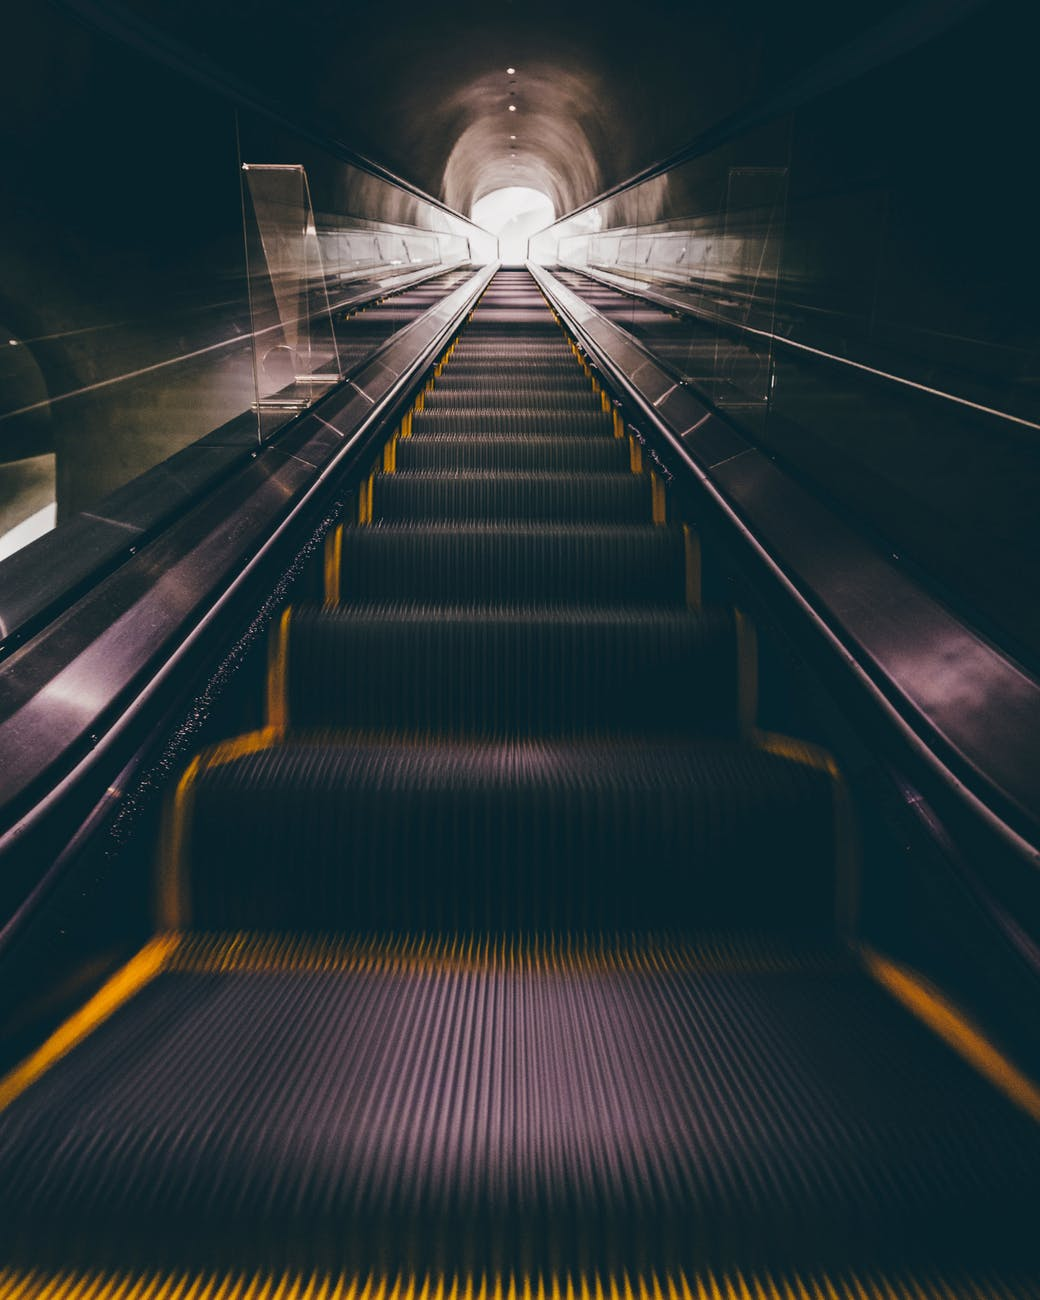 blur carry dark escalator